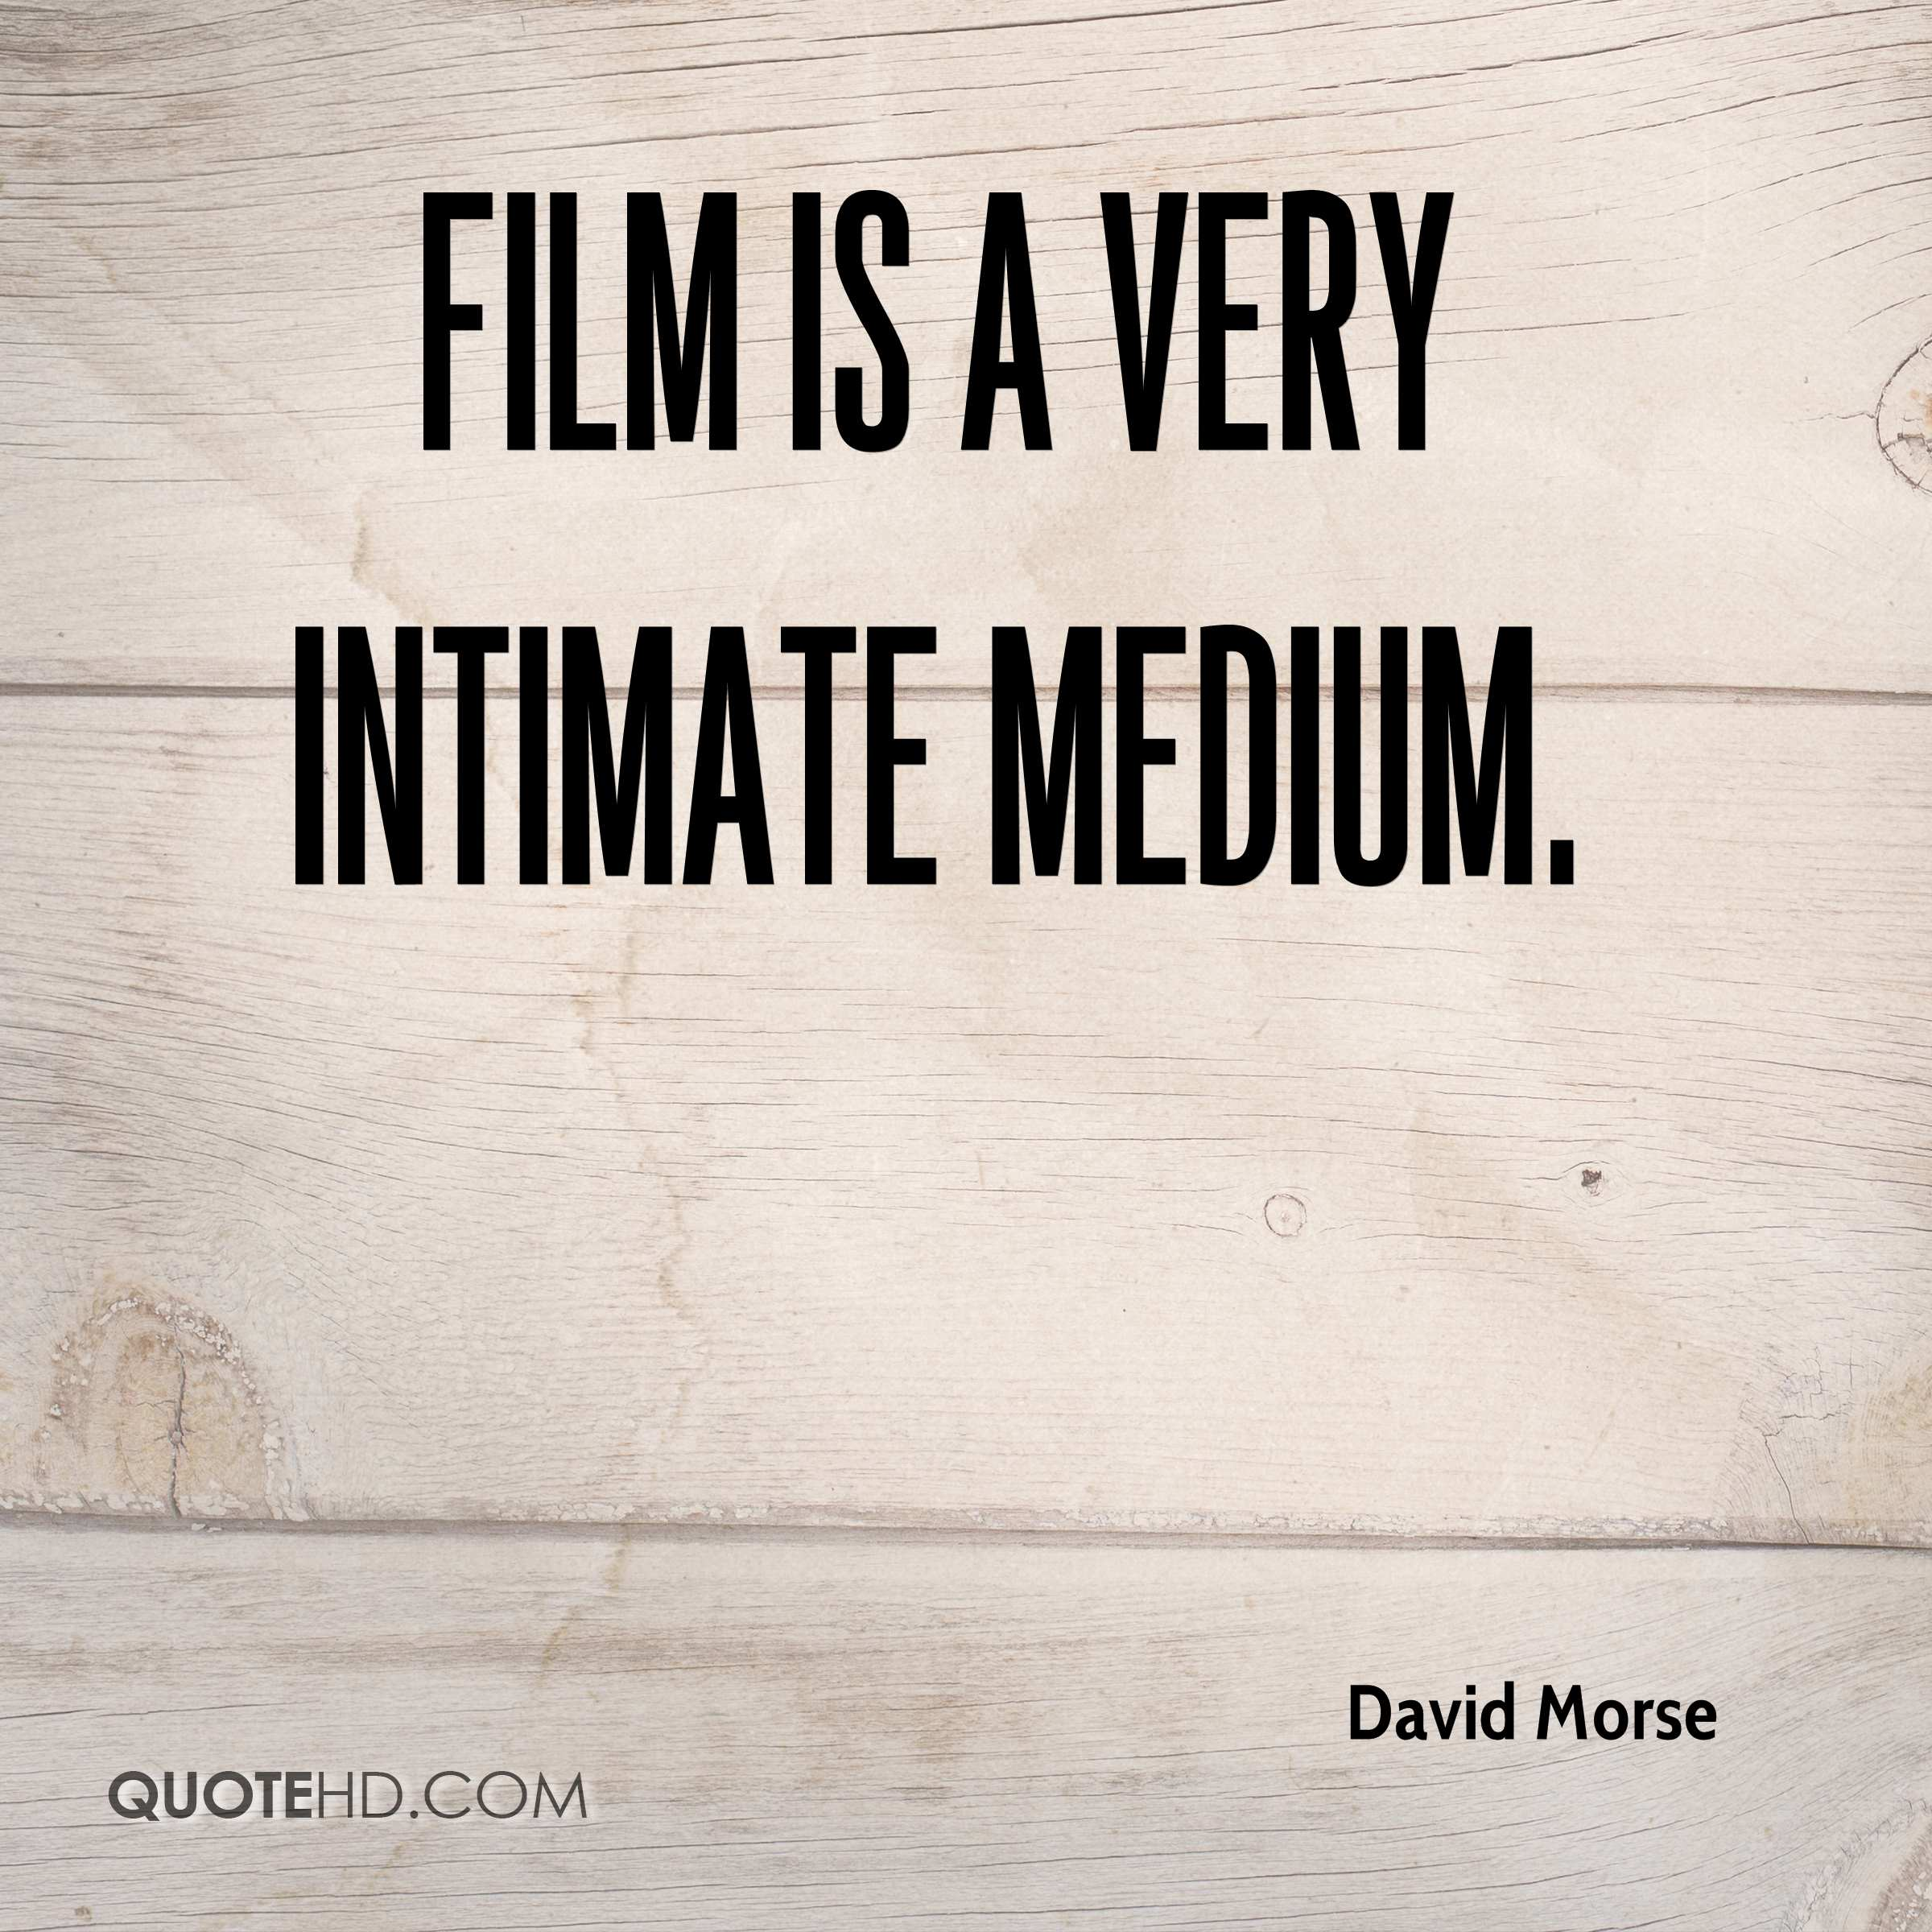 Film is a very intimate medium.